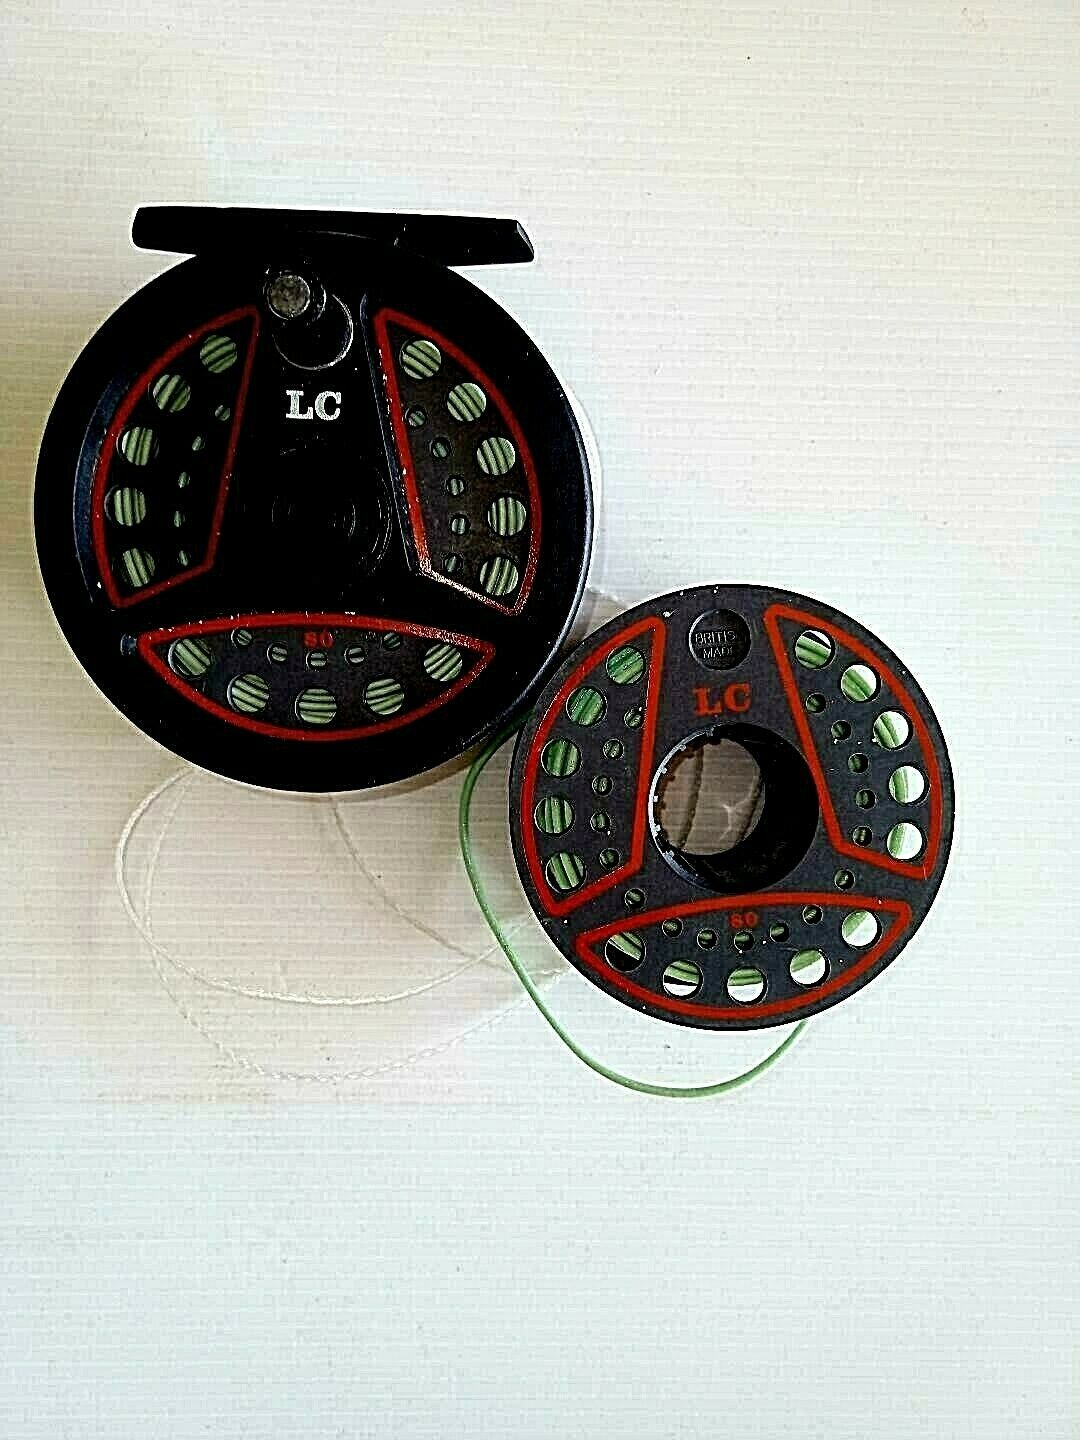 Fly Fishing Reel Leeda Model 80 LC With A Spare Spool, Both...